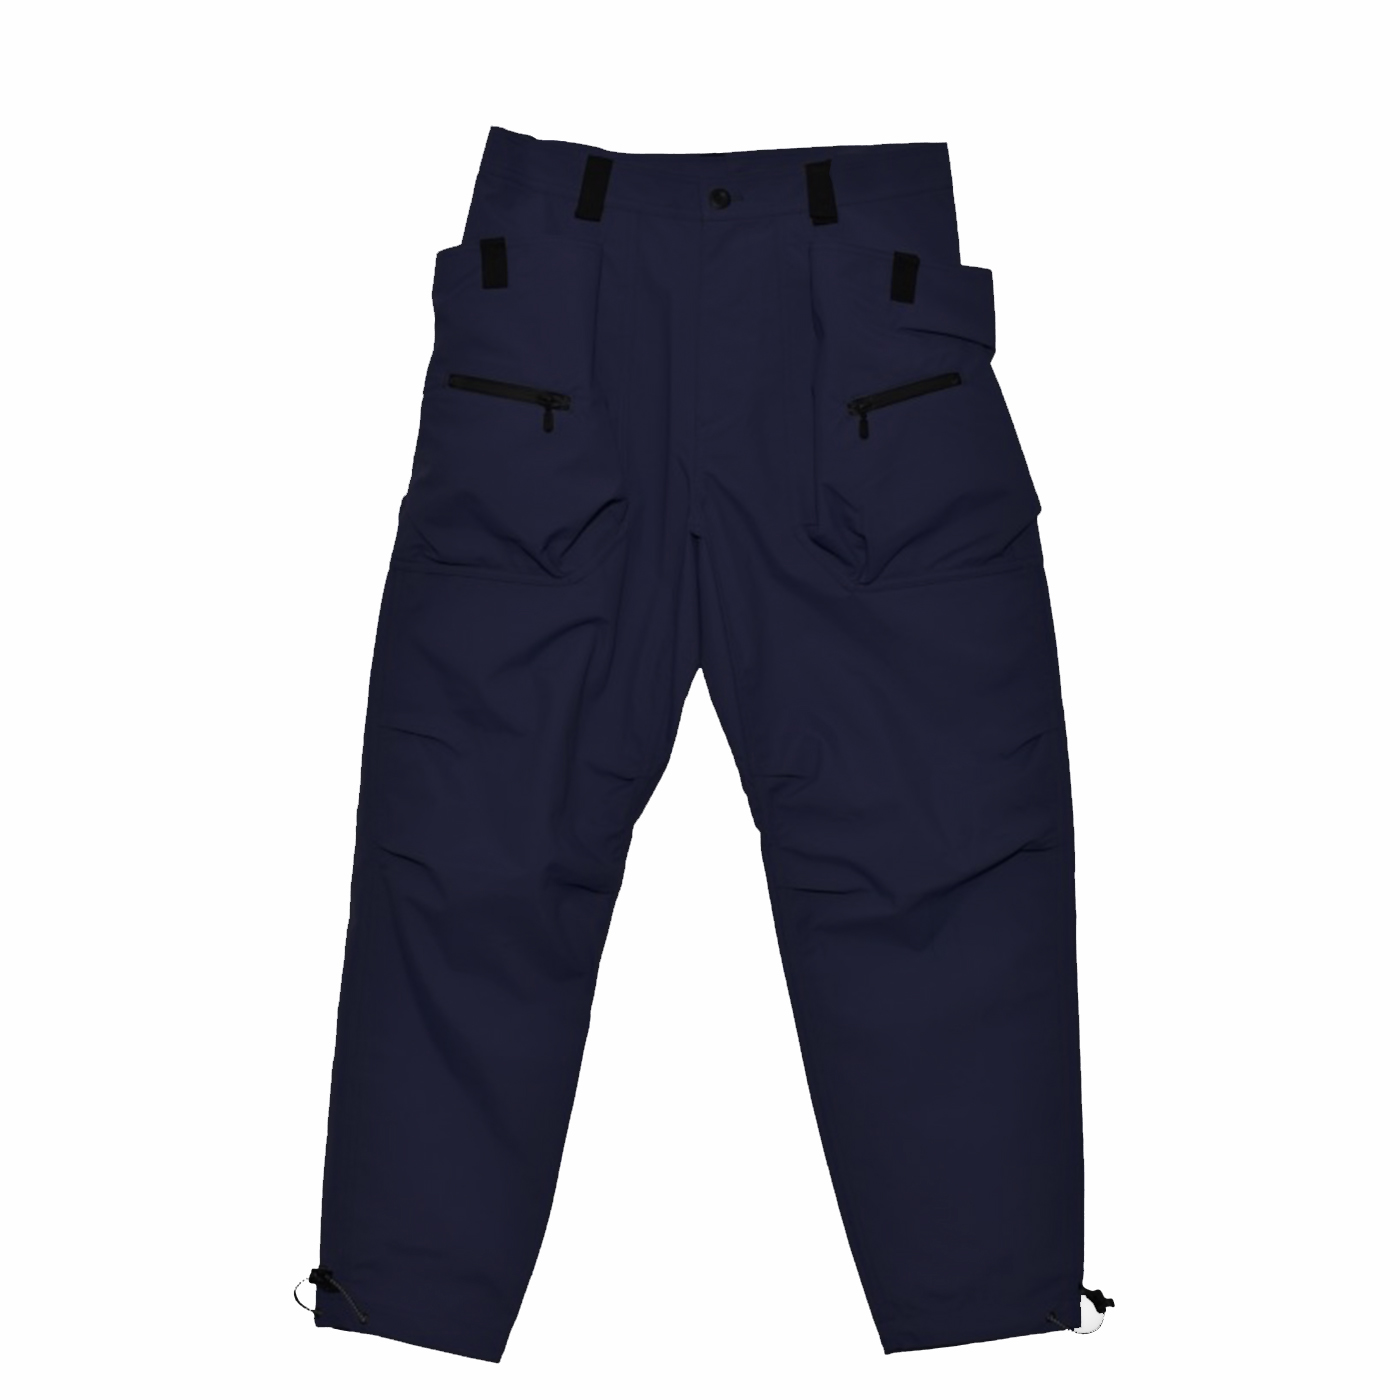 product: MS ストレッチパンツ / color: NAVY 1